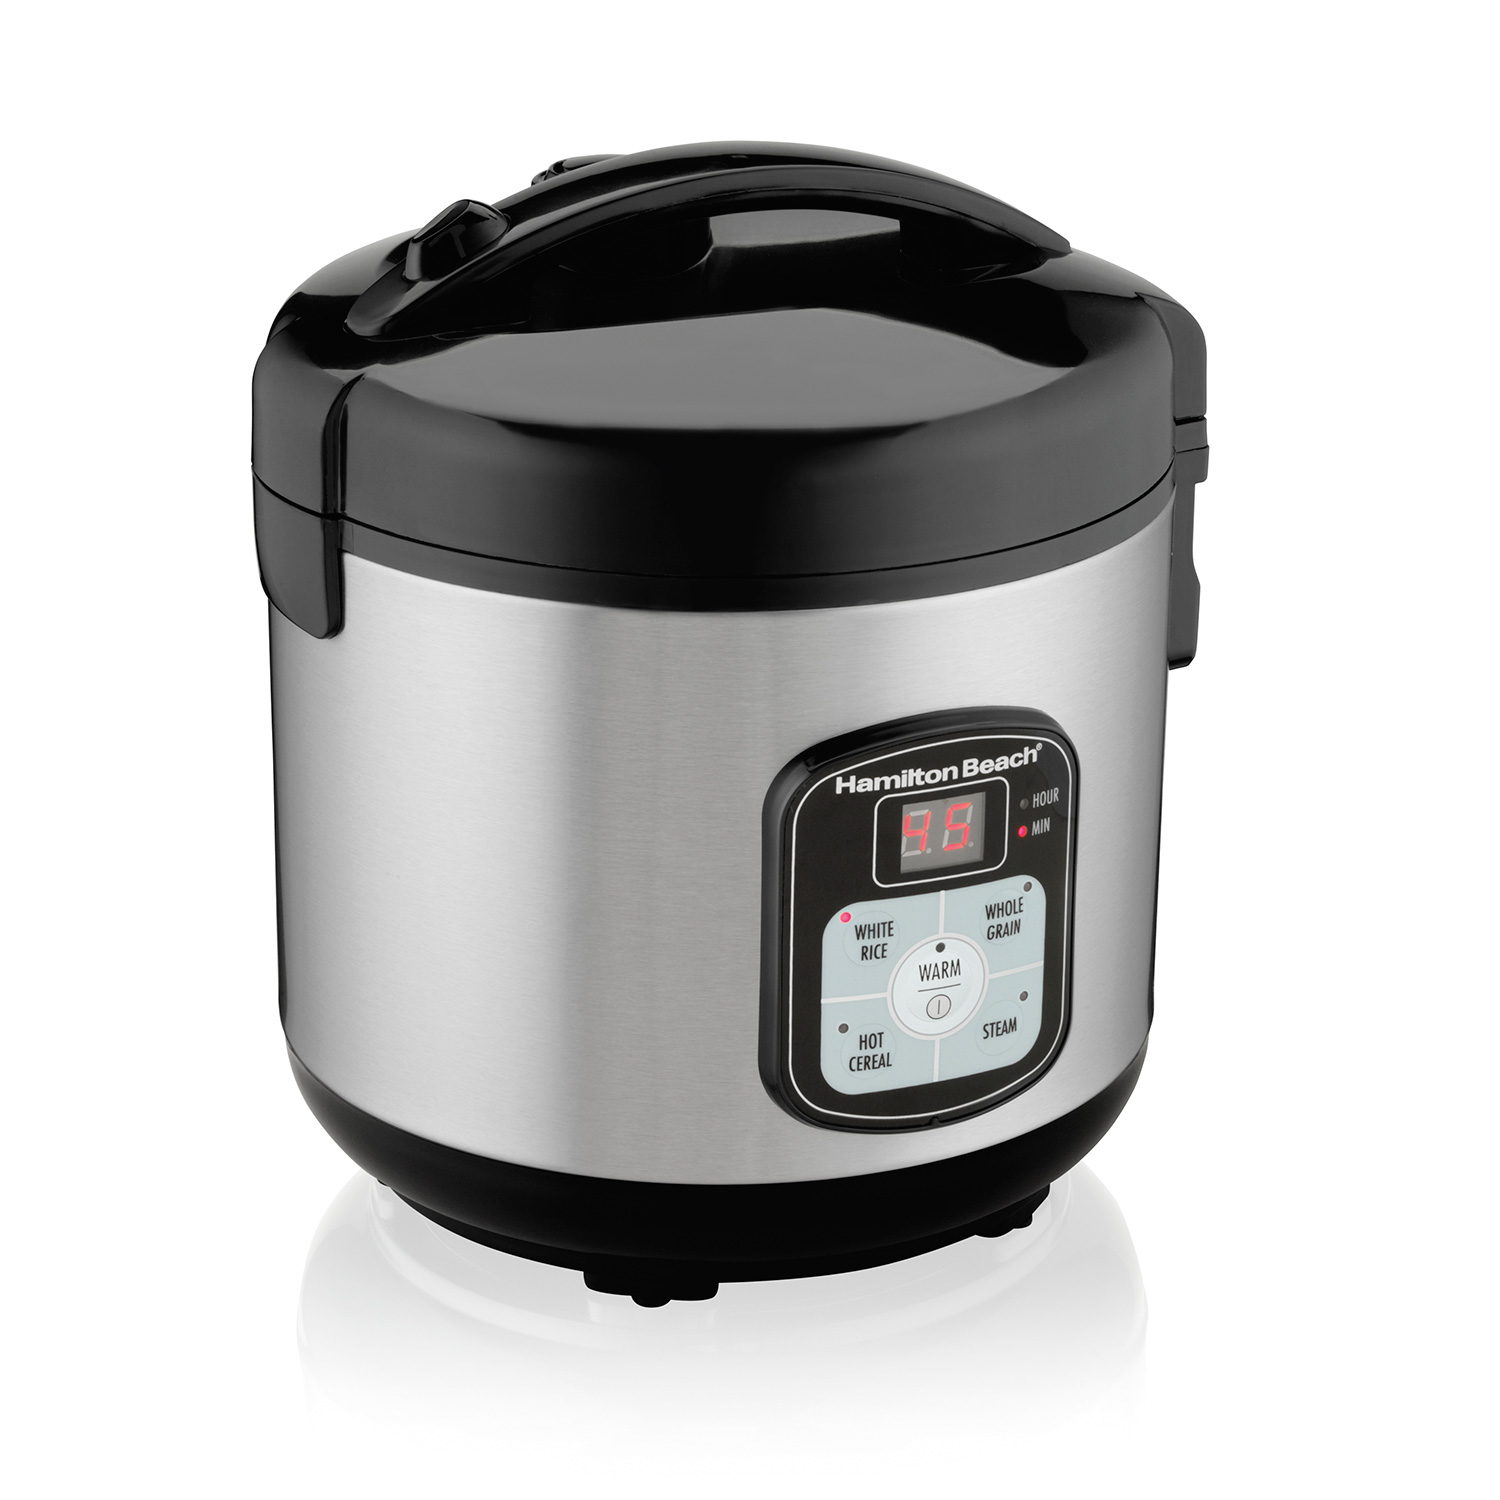 Largest Capacity Rice Cooker Steamer ~ Hamilton beach cup capacity cooked rice cooker food